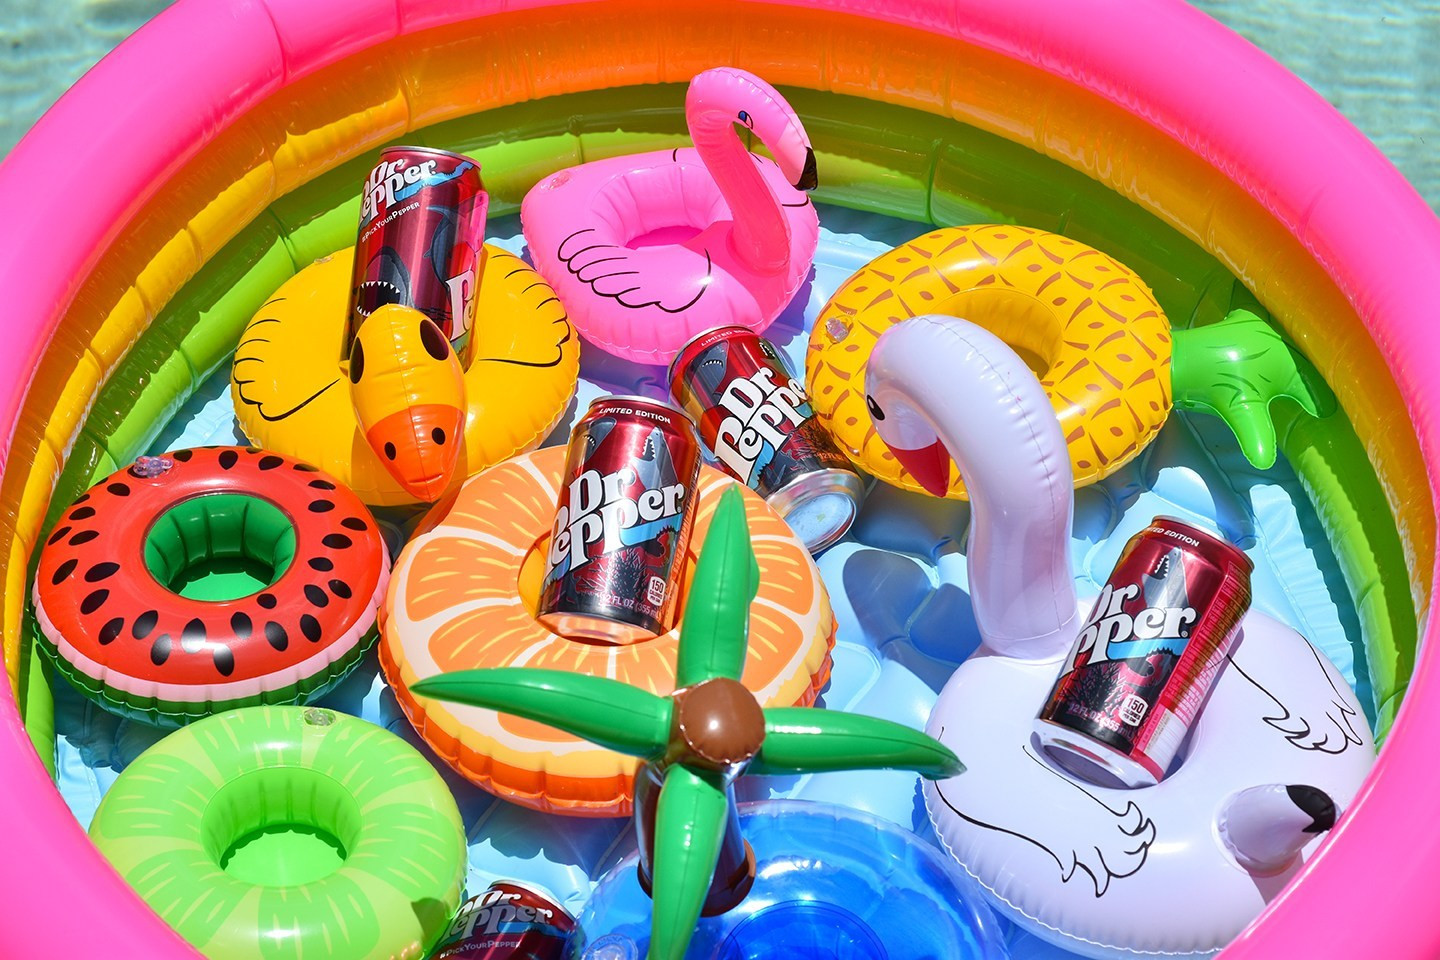 Summer Pool Party Ideas For Adults  Pool Party Ideas for Adults Happy Family Blog